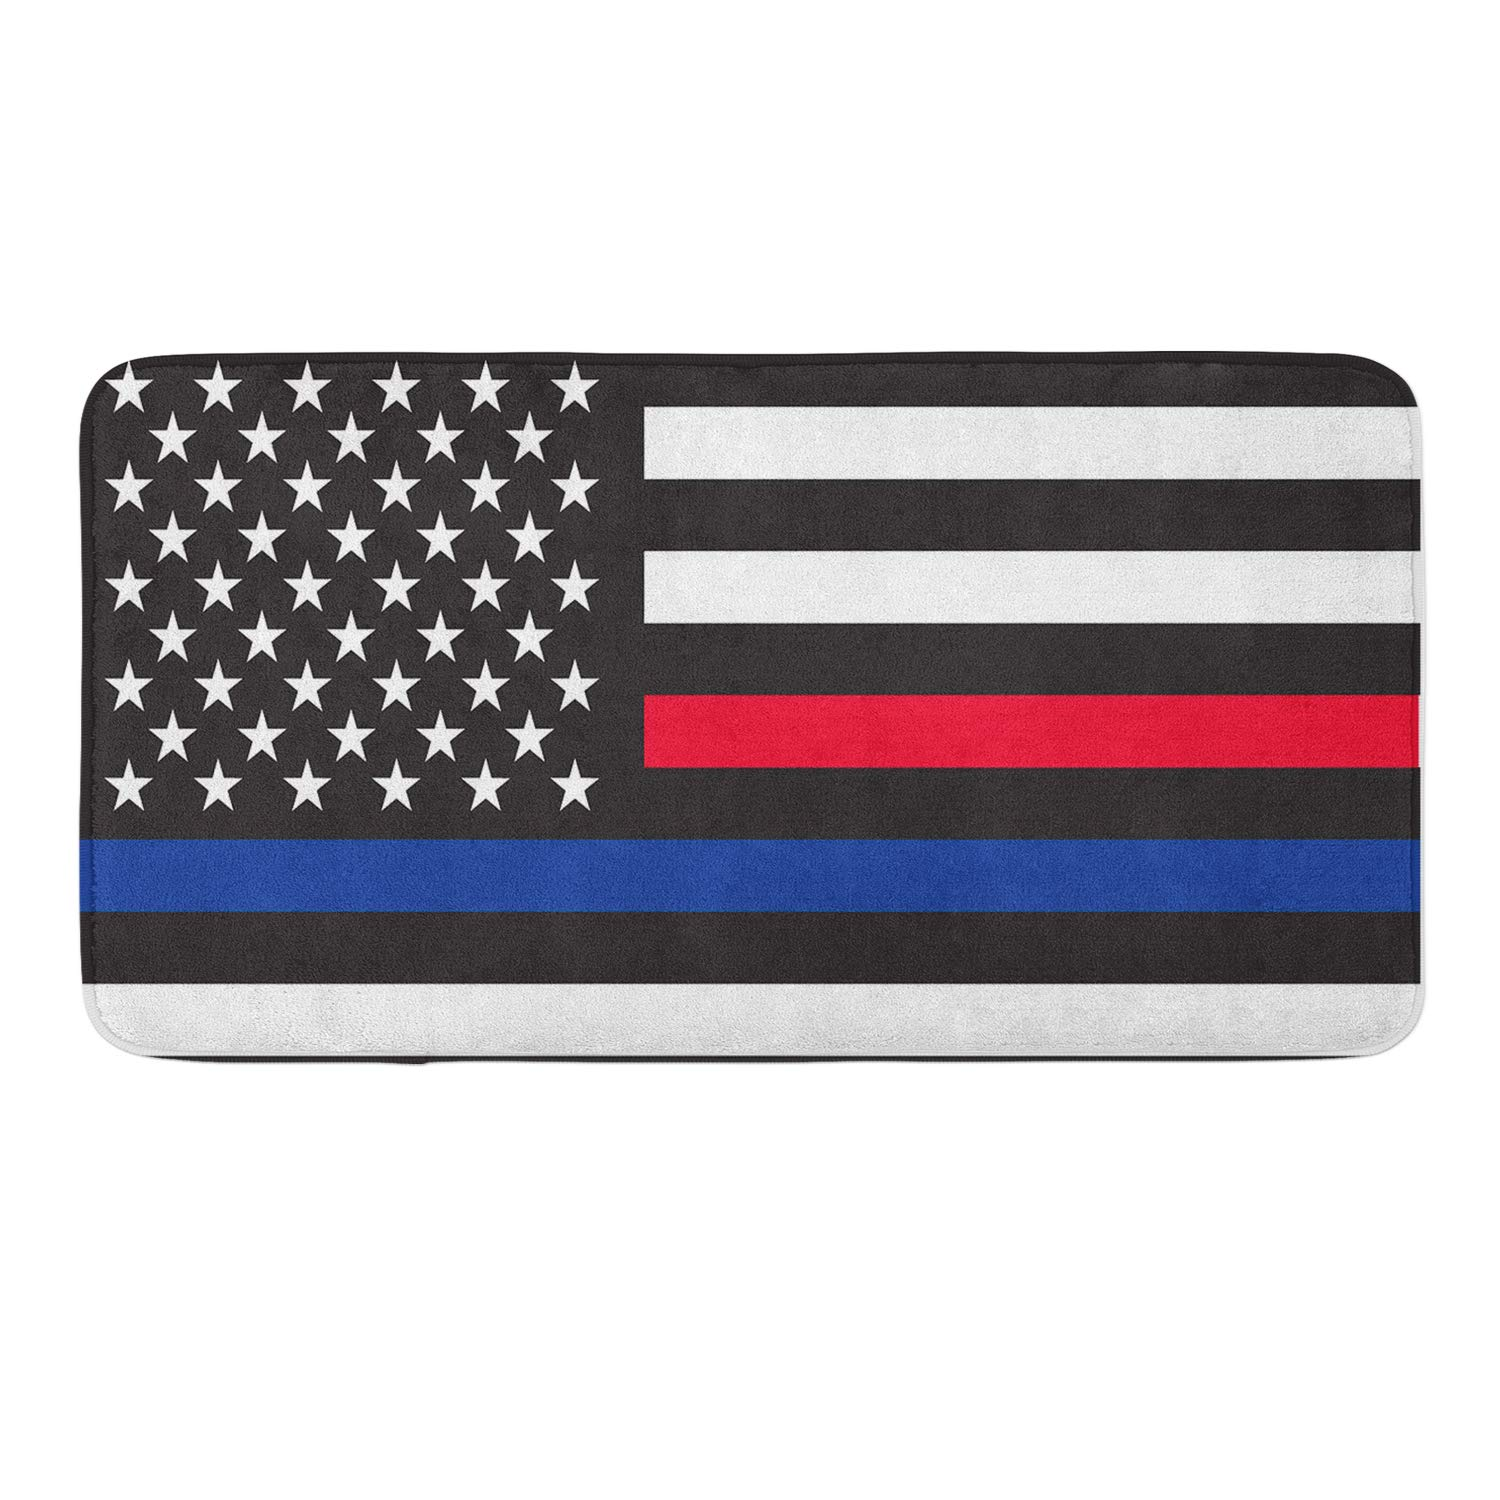 CIGOCI Memory Foam Non-Slip Bathroom Mat - 18 x 36 Inch, Extra Absorbent,Soft,Duarable and Quick-Dry Shaggy Mat, 3D PrintThin Blue Red Line American Flag by CIGOCI (Image #1)